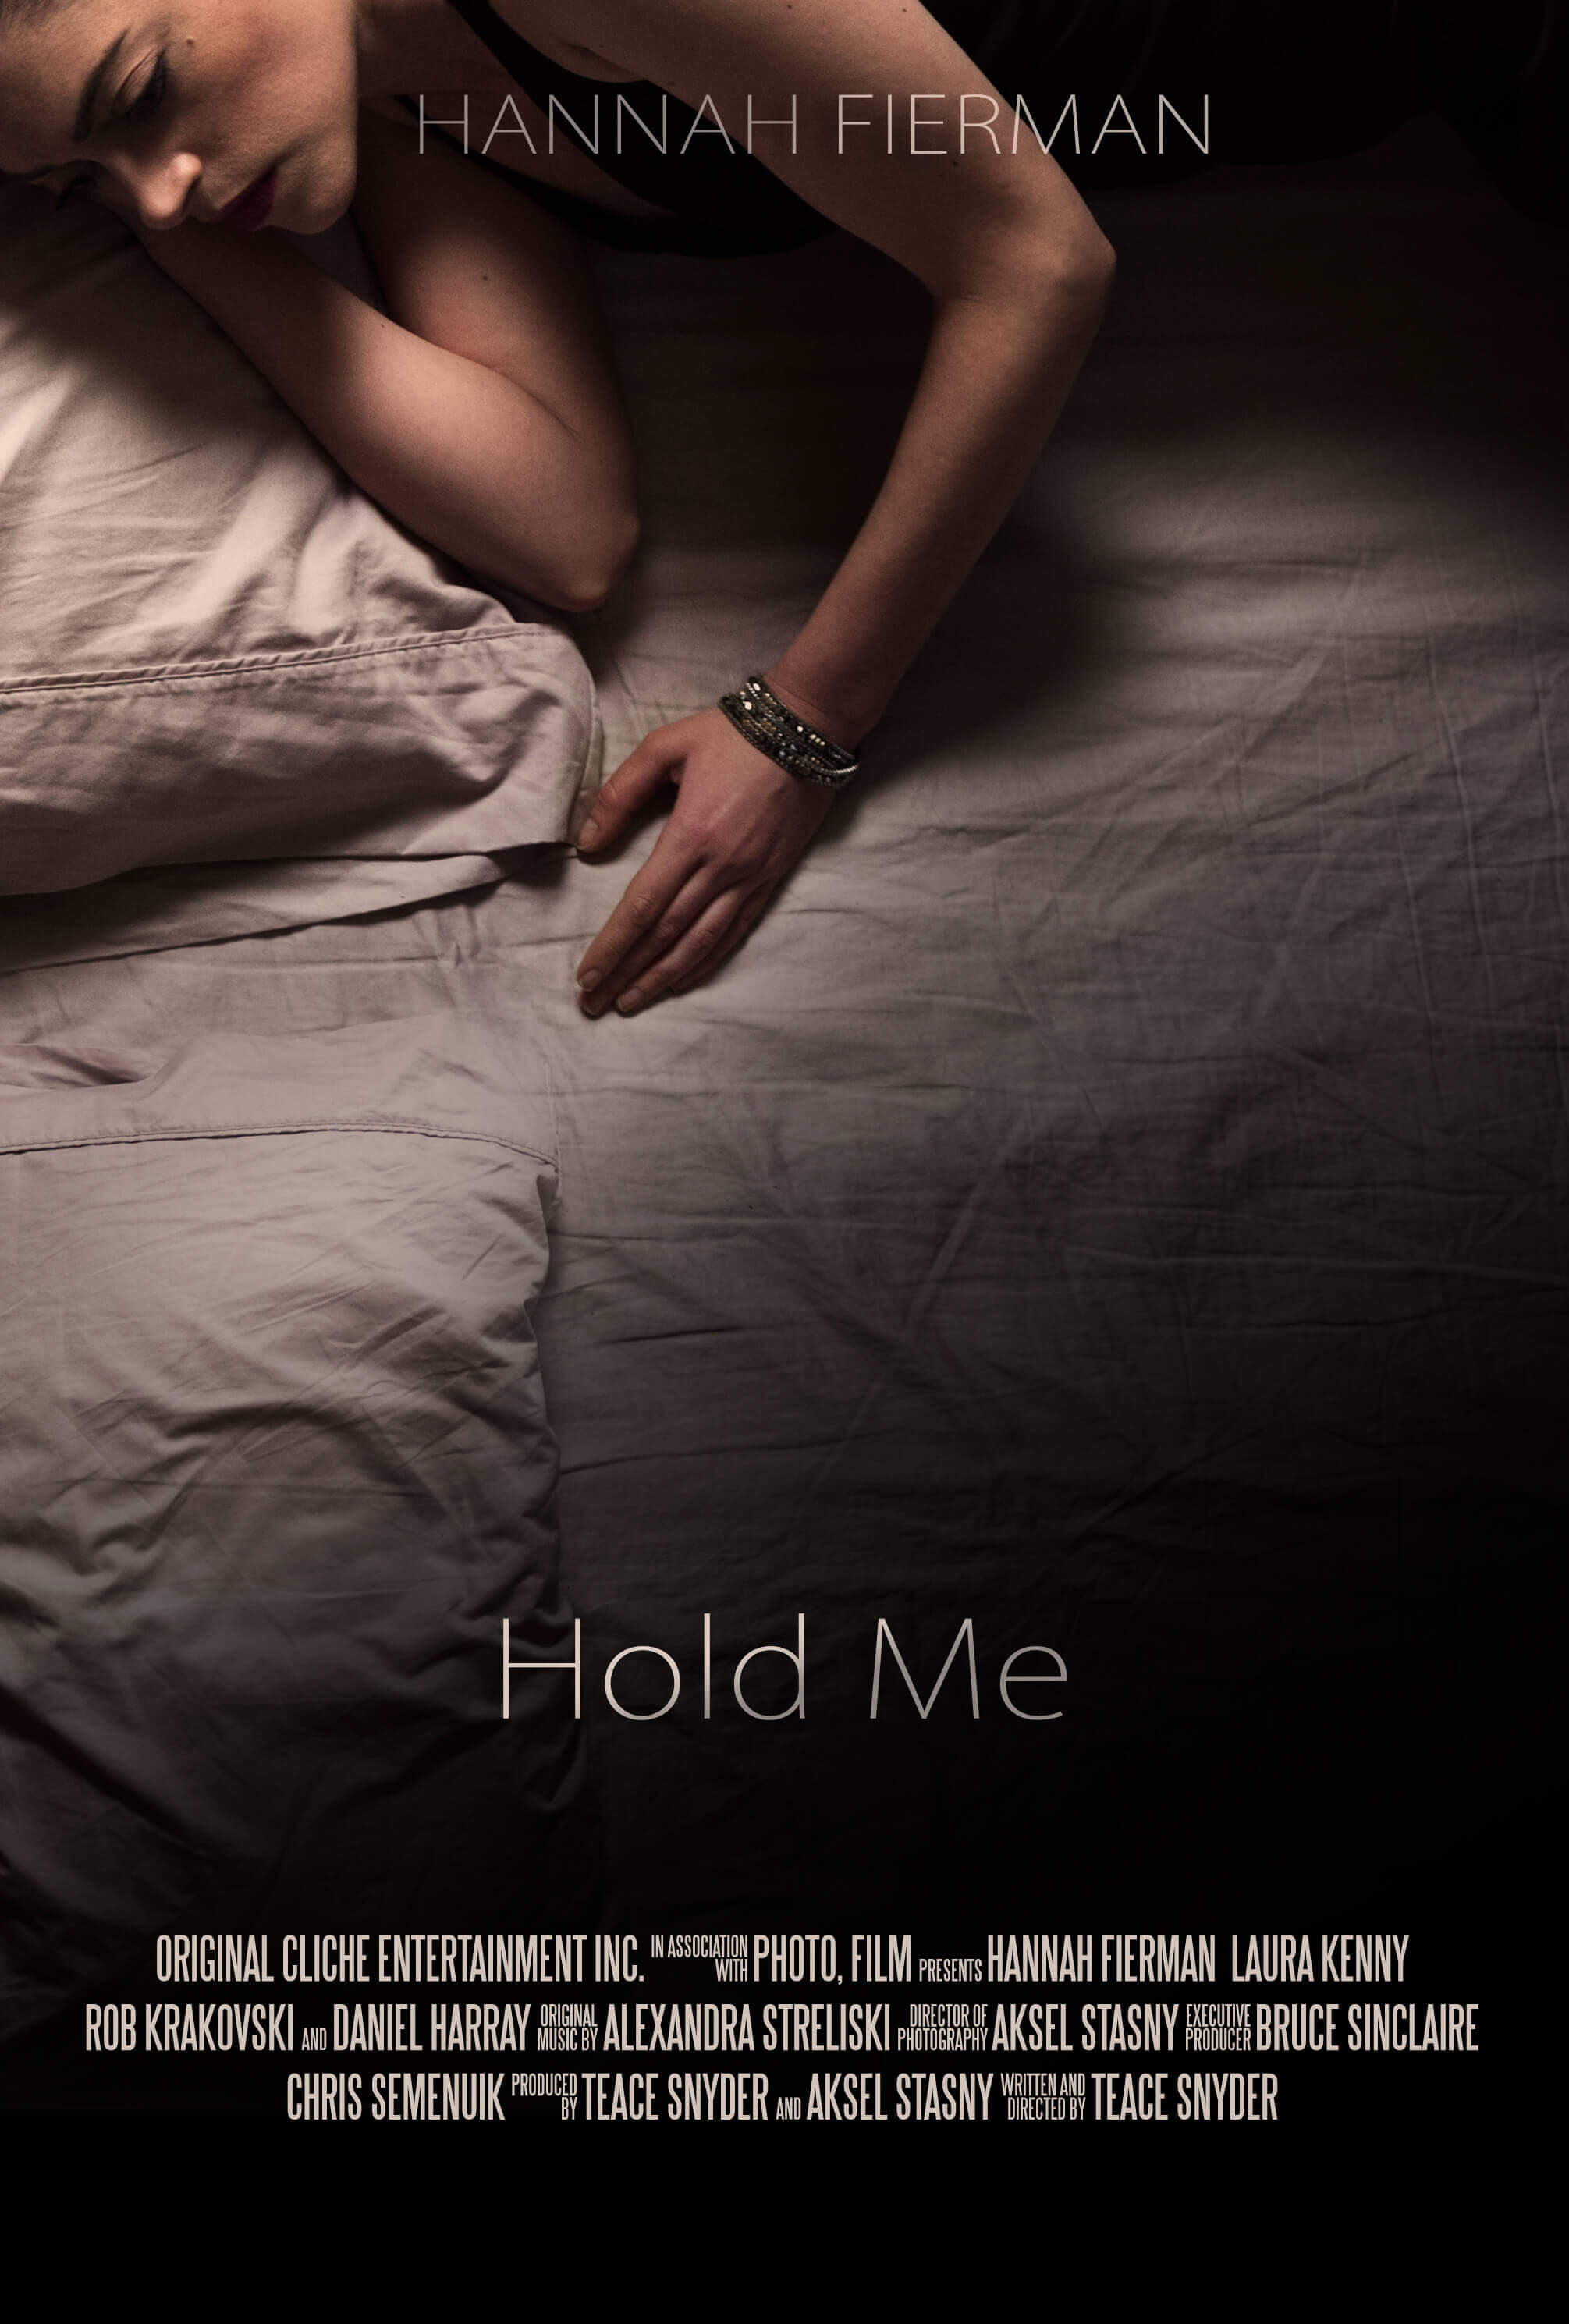 Hold Me the movie poster